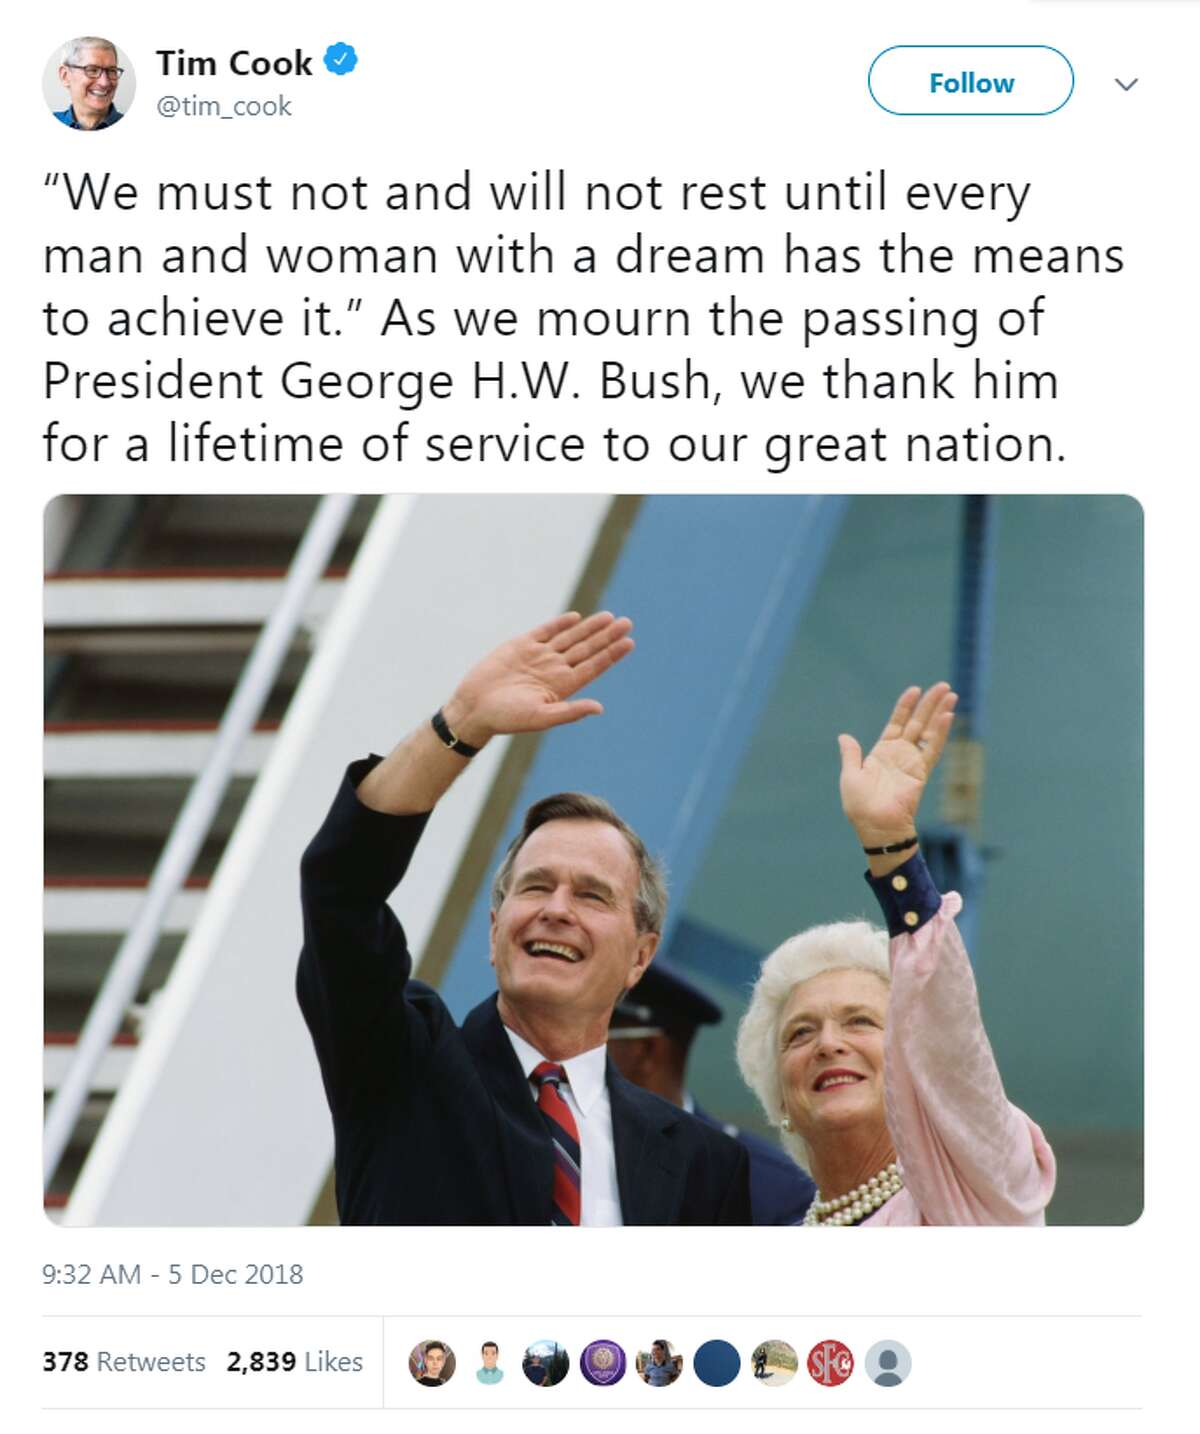 >>> See some of the social media reactions to Bush's funeral. @tim_cook